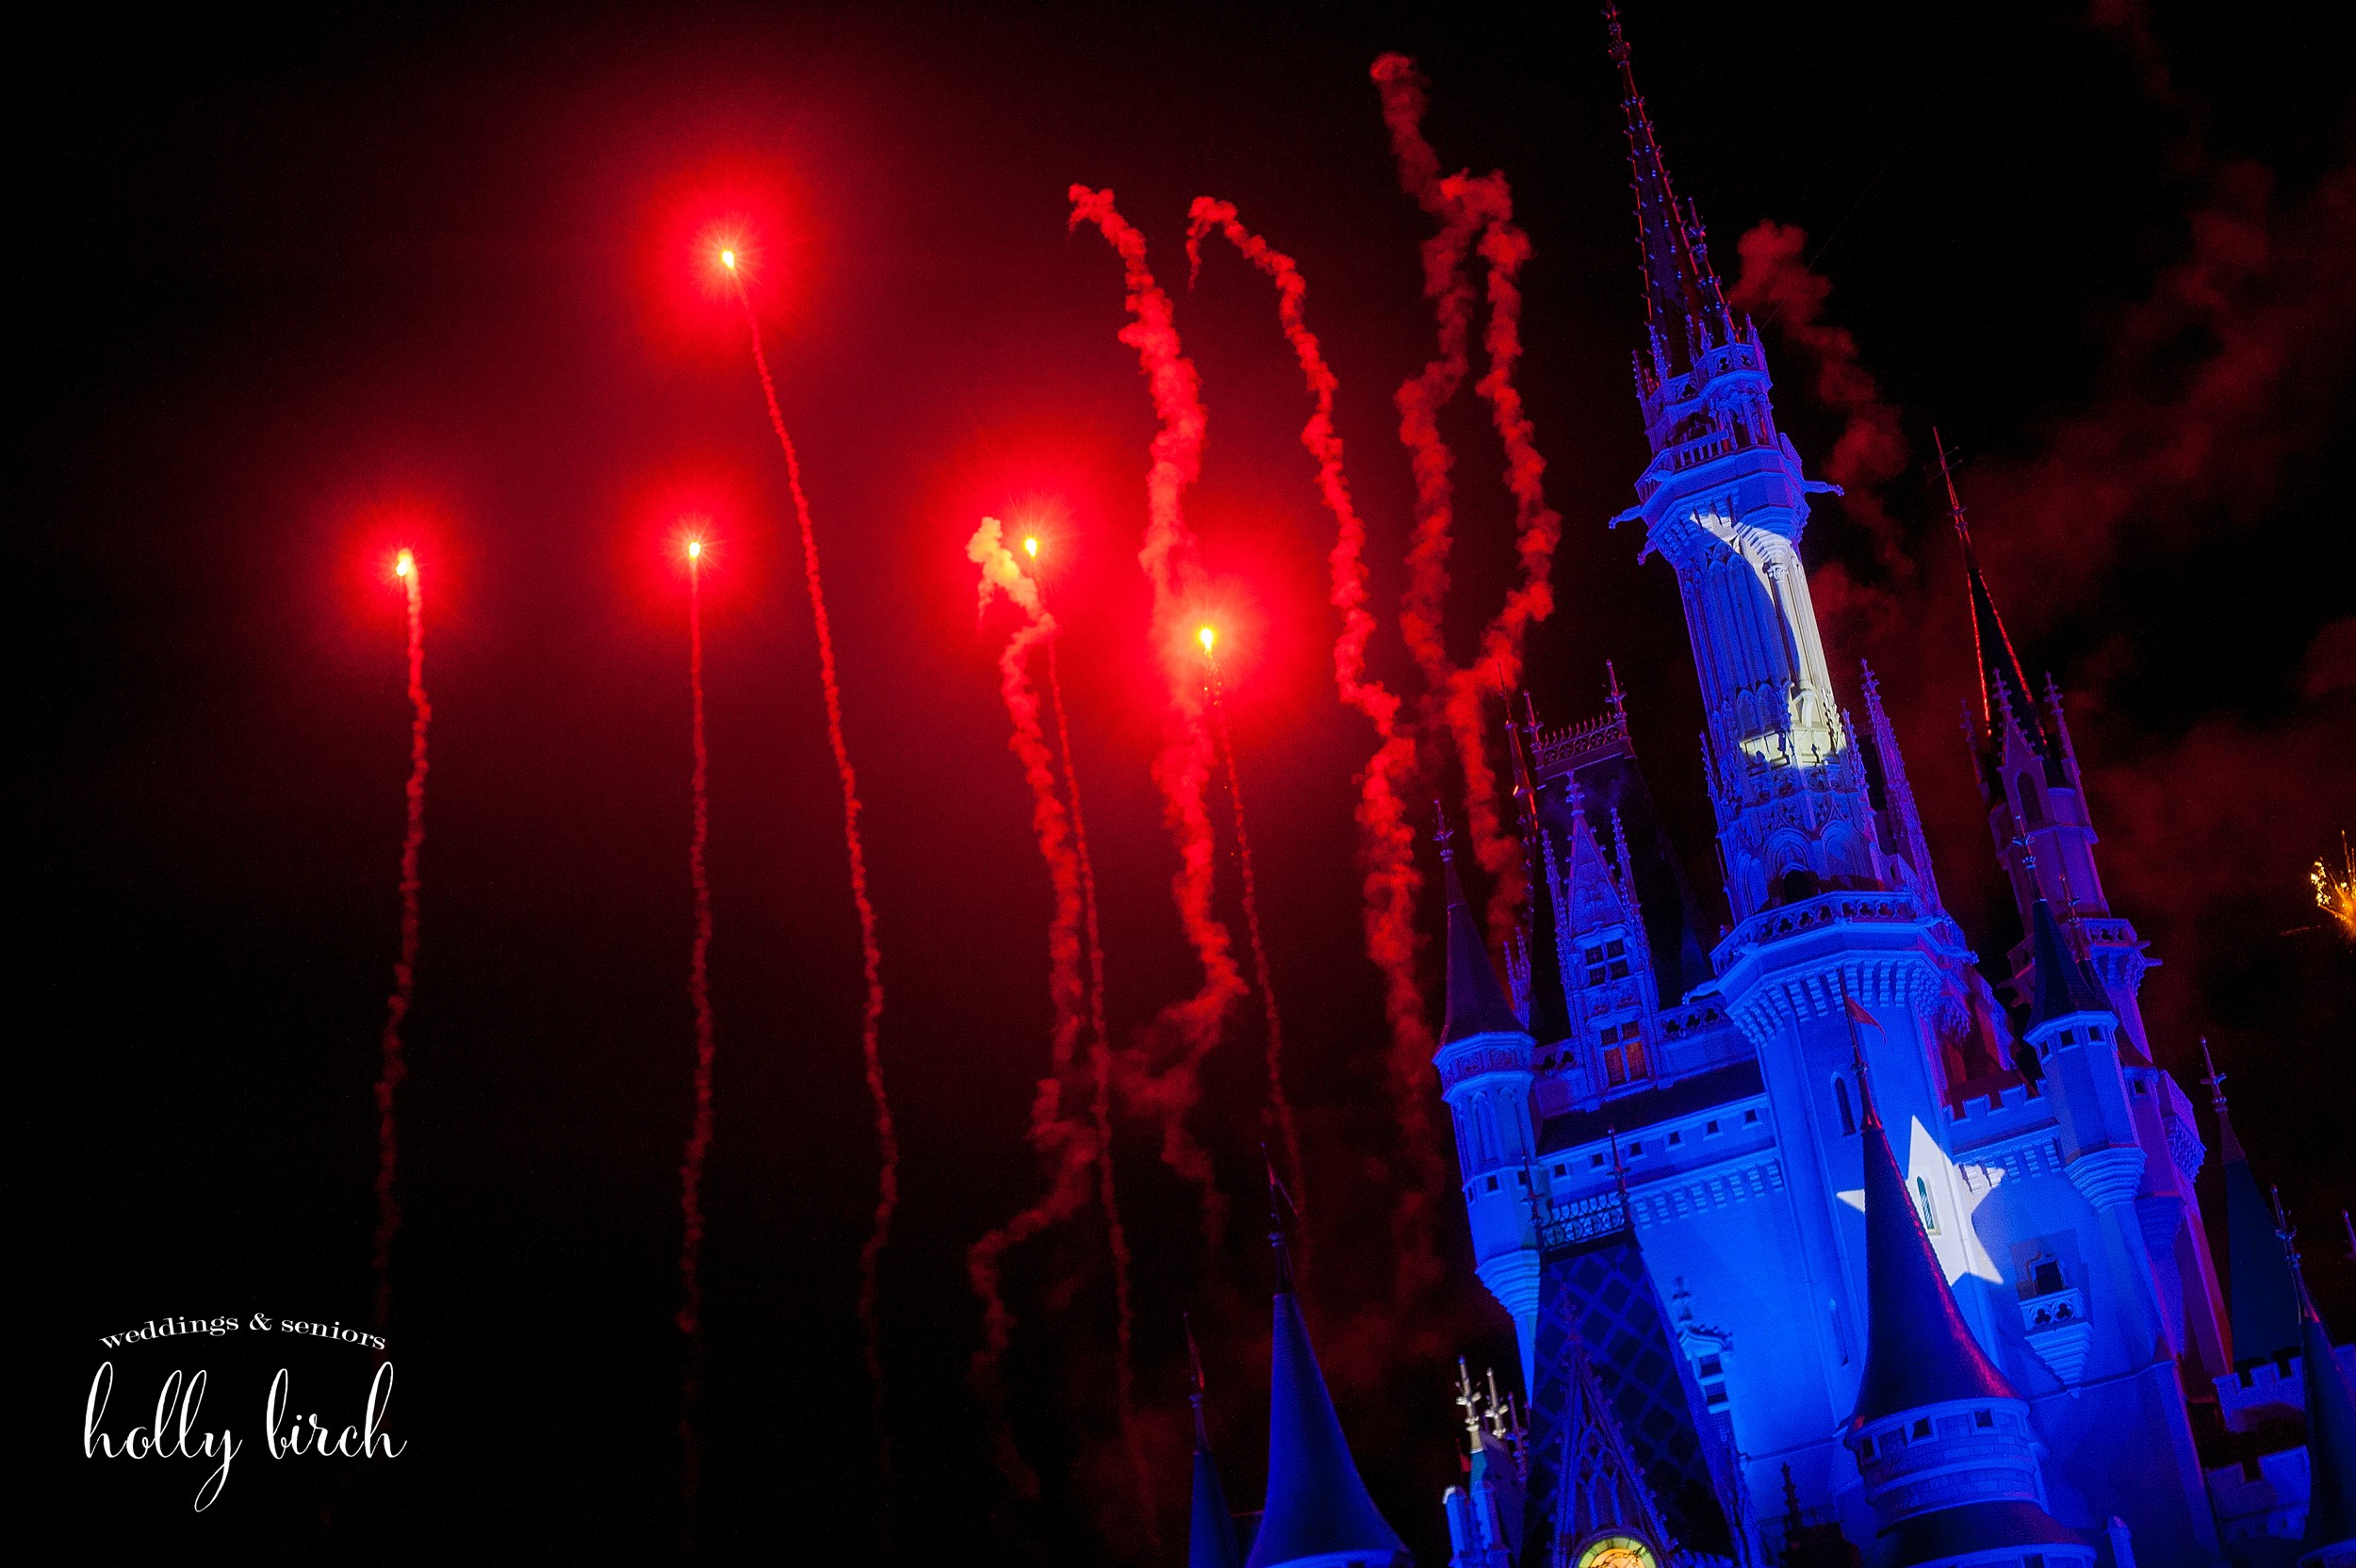 Fantasia illuminations firewords